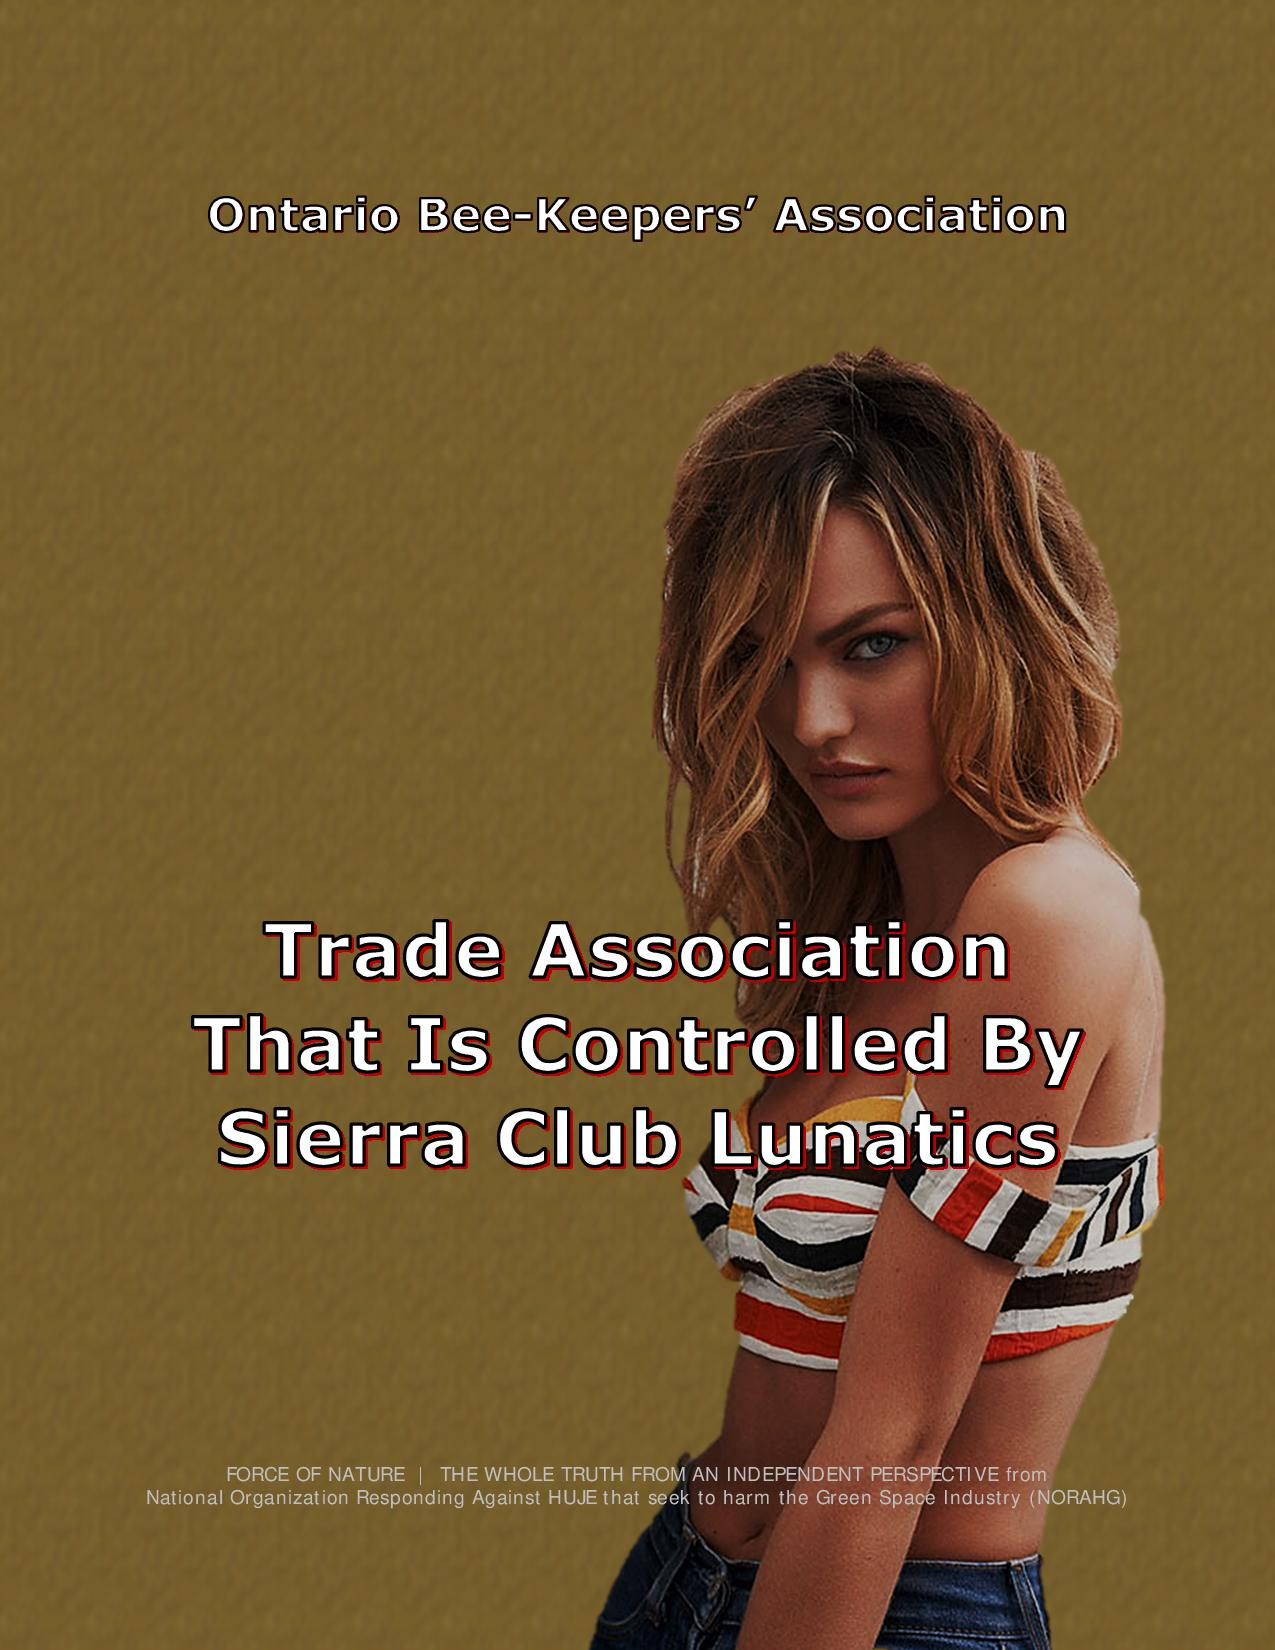 Ontario Bee-Keepers' Association (7)